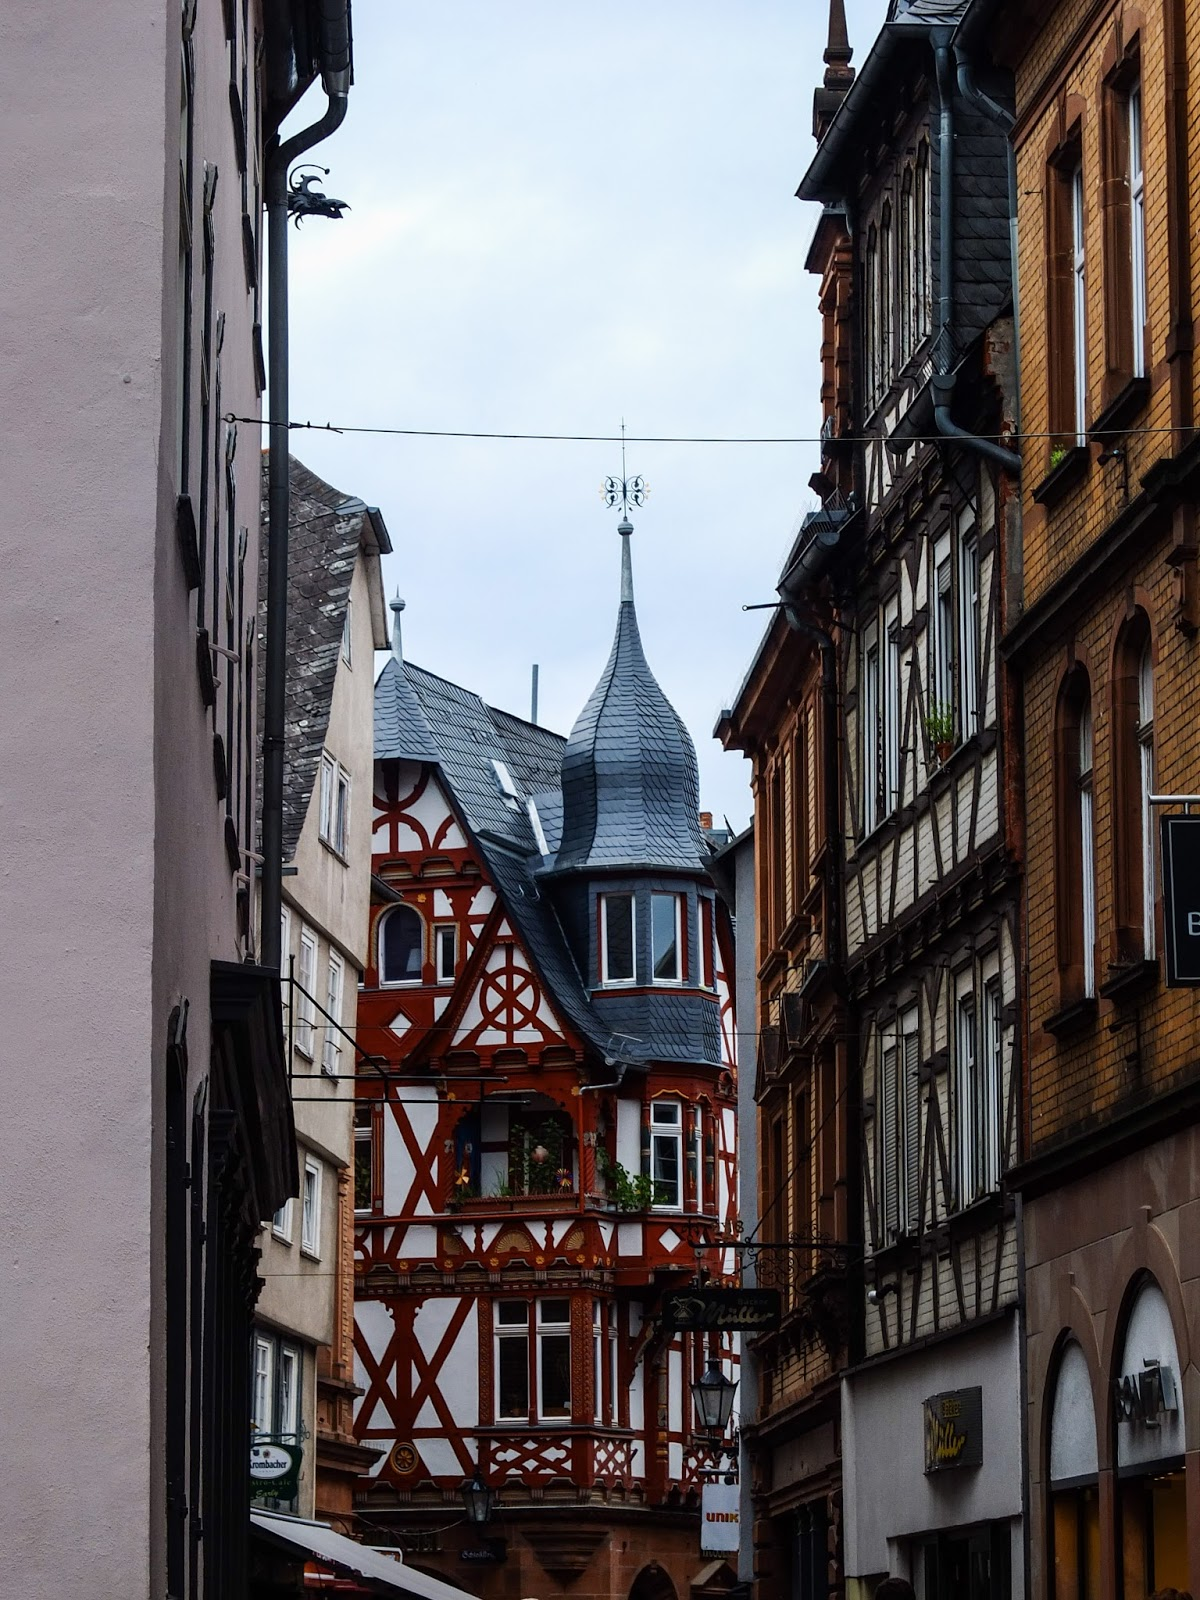 View of the historic Wettergasse in Marburg, Germany.